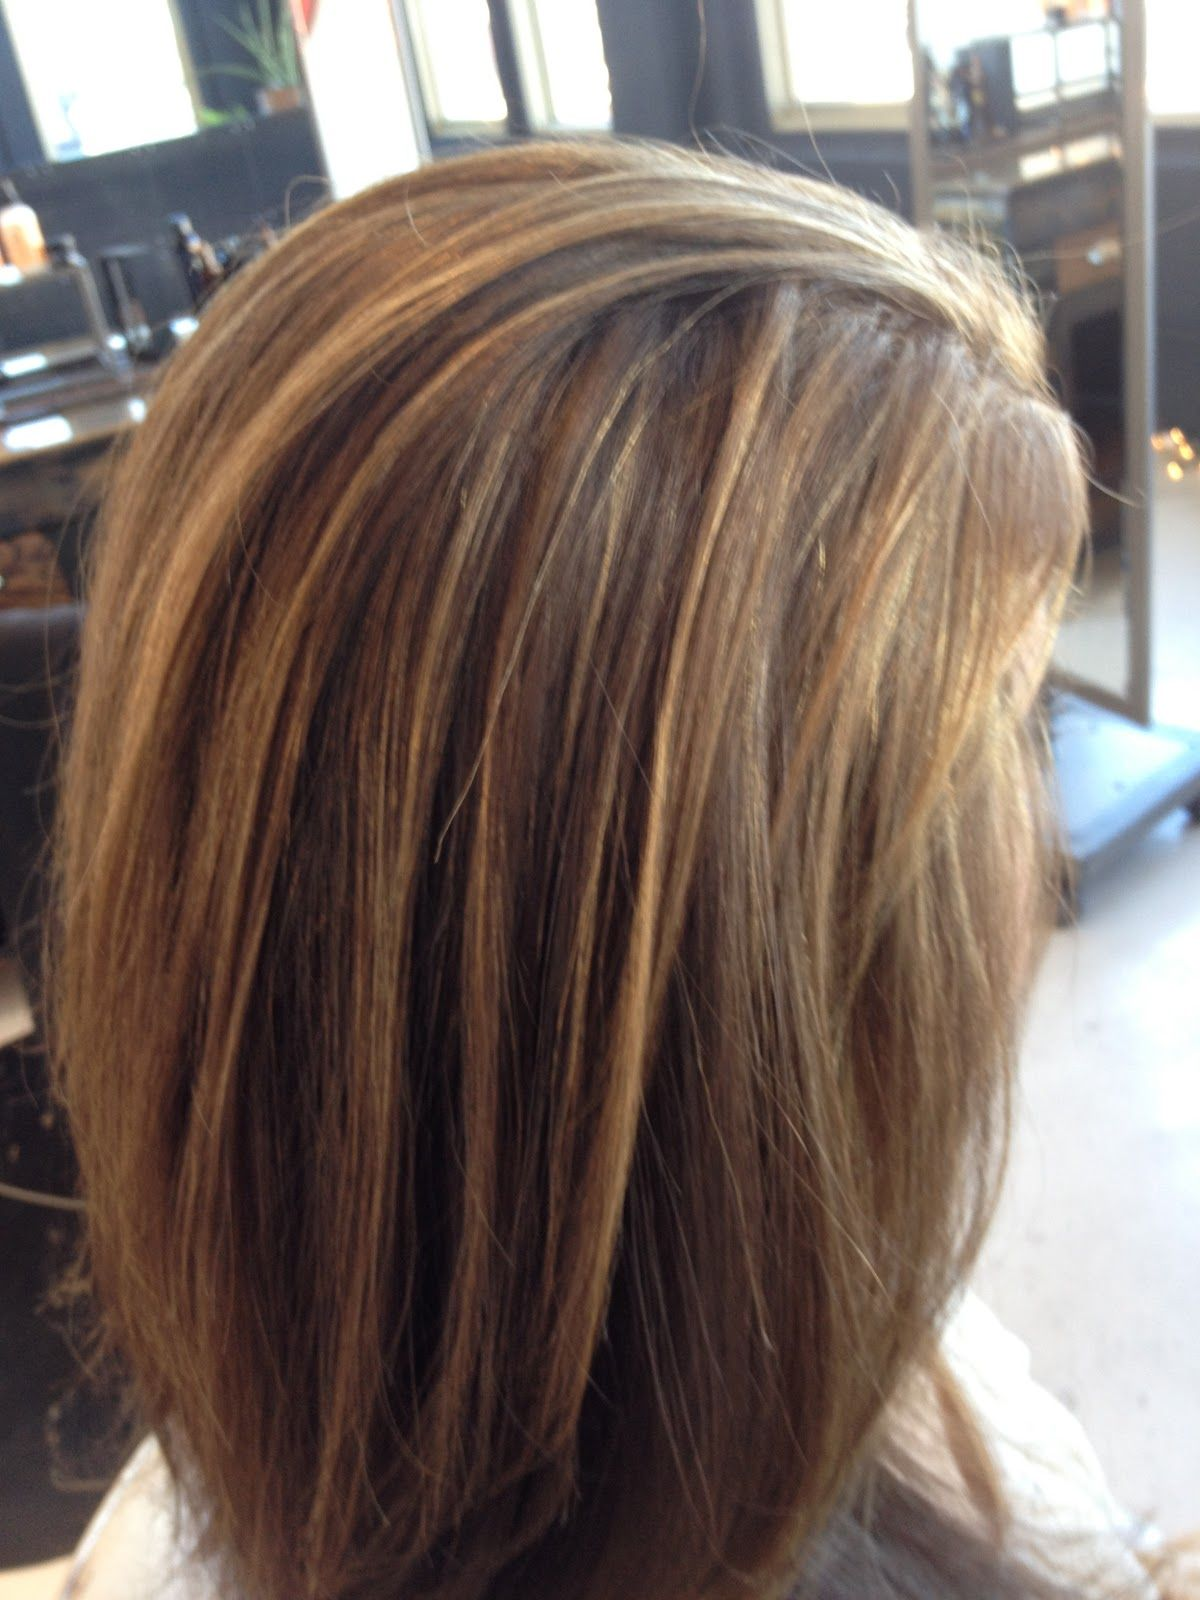 This Is How I Want My Hair With But The Blonde To Be More Golden Brown Hair Highlights And Lowlights Brown Hair With Highlights Hair Styles